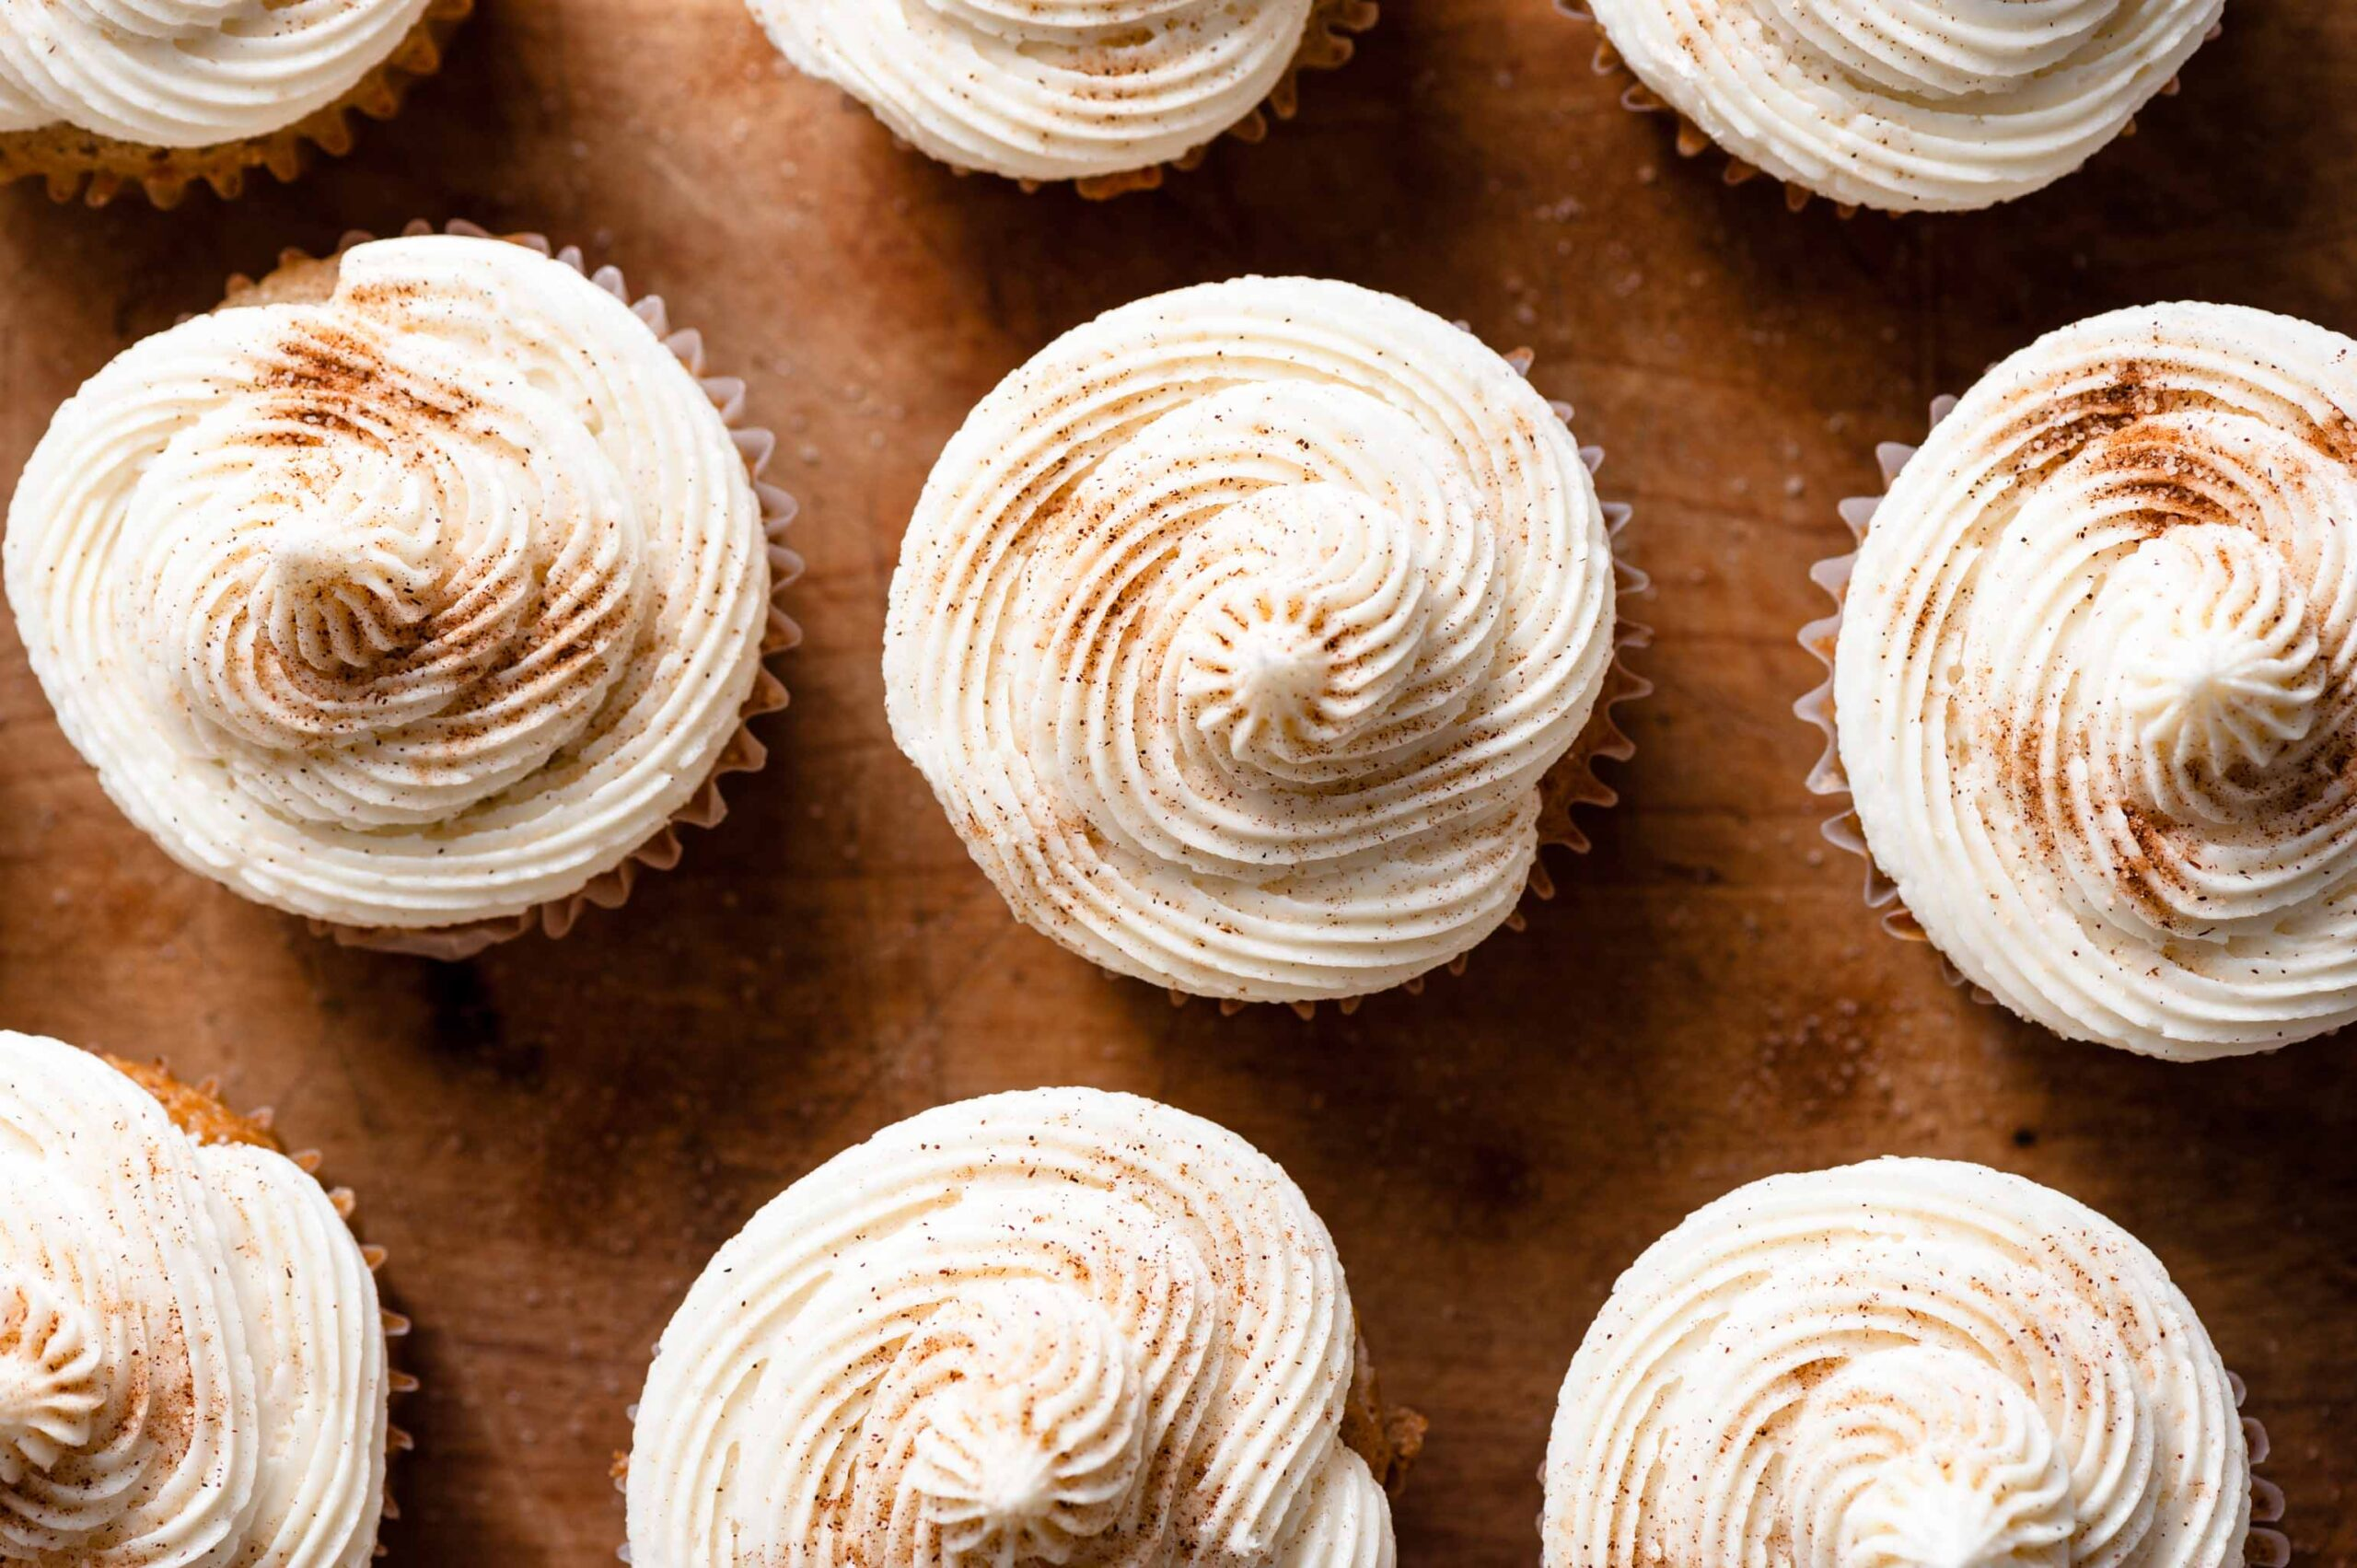 Maple Vanilla Buttercream Cupcake Frosting on Apple Pie CUpcakes